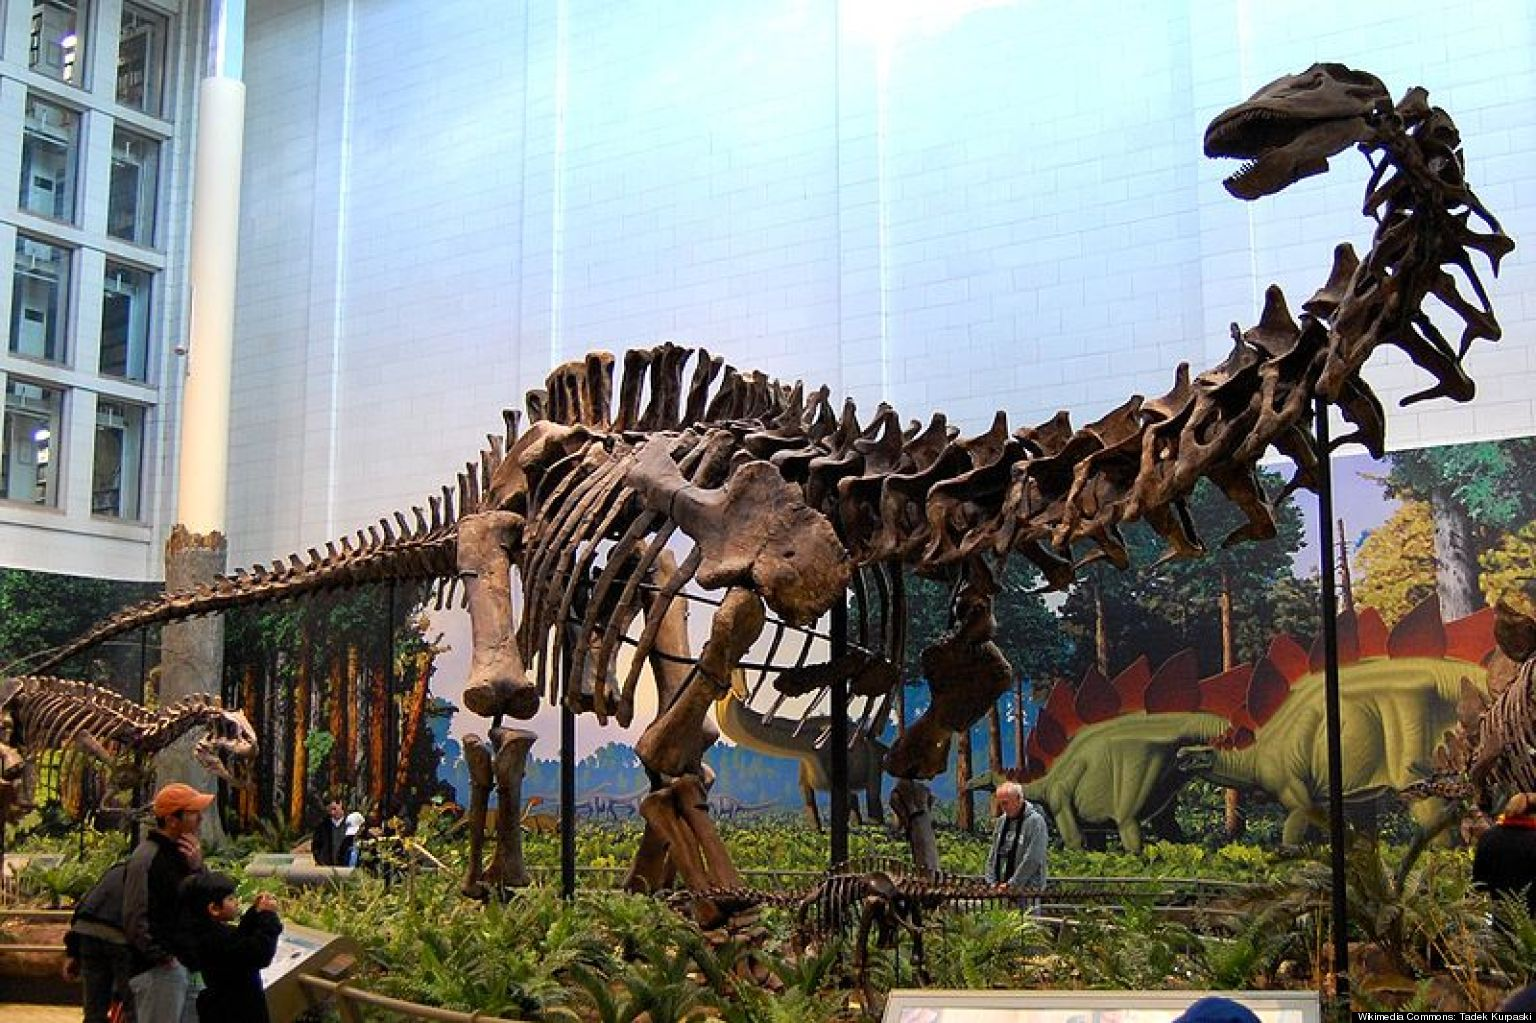 Brontosaurus Not Real? Dino Is Actually Apatosaurus & Other Misconceptions Continue (VIDEO